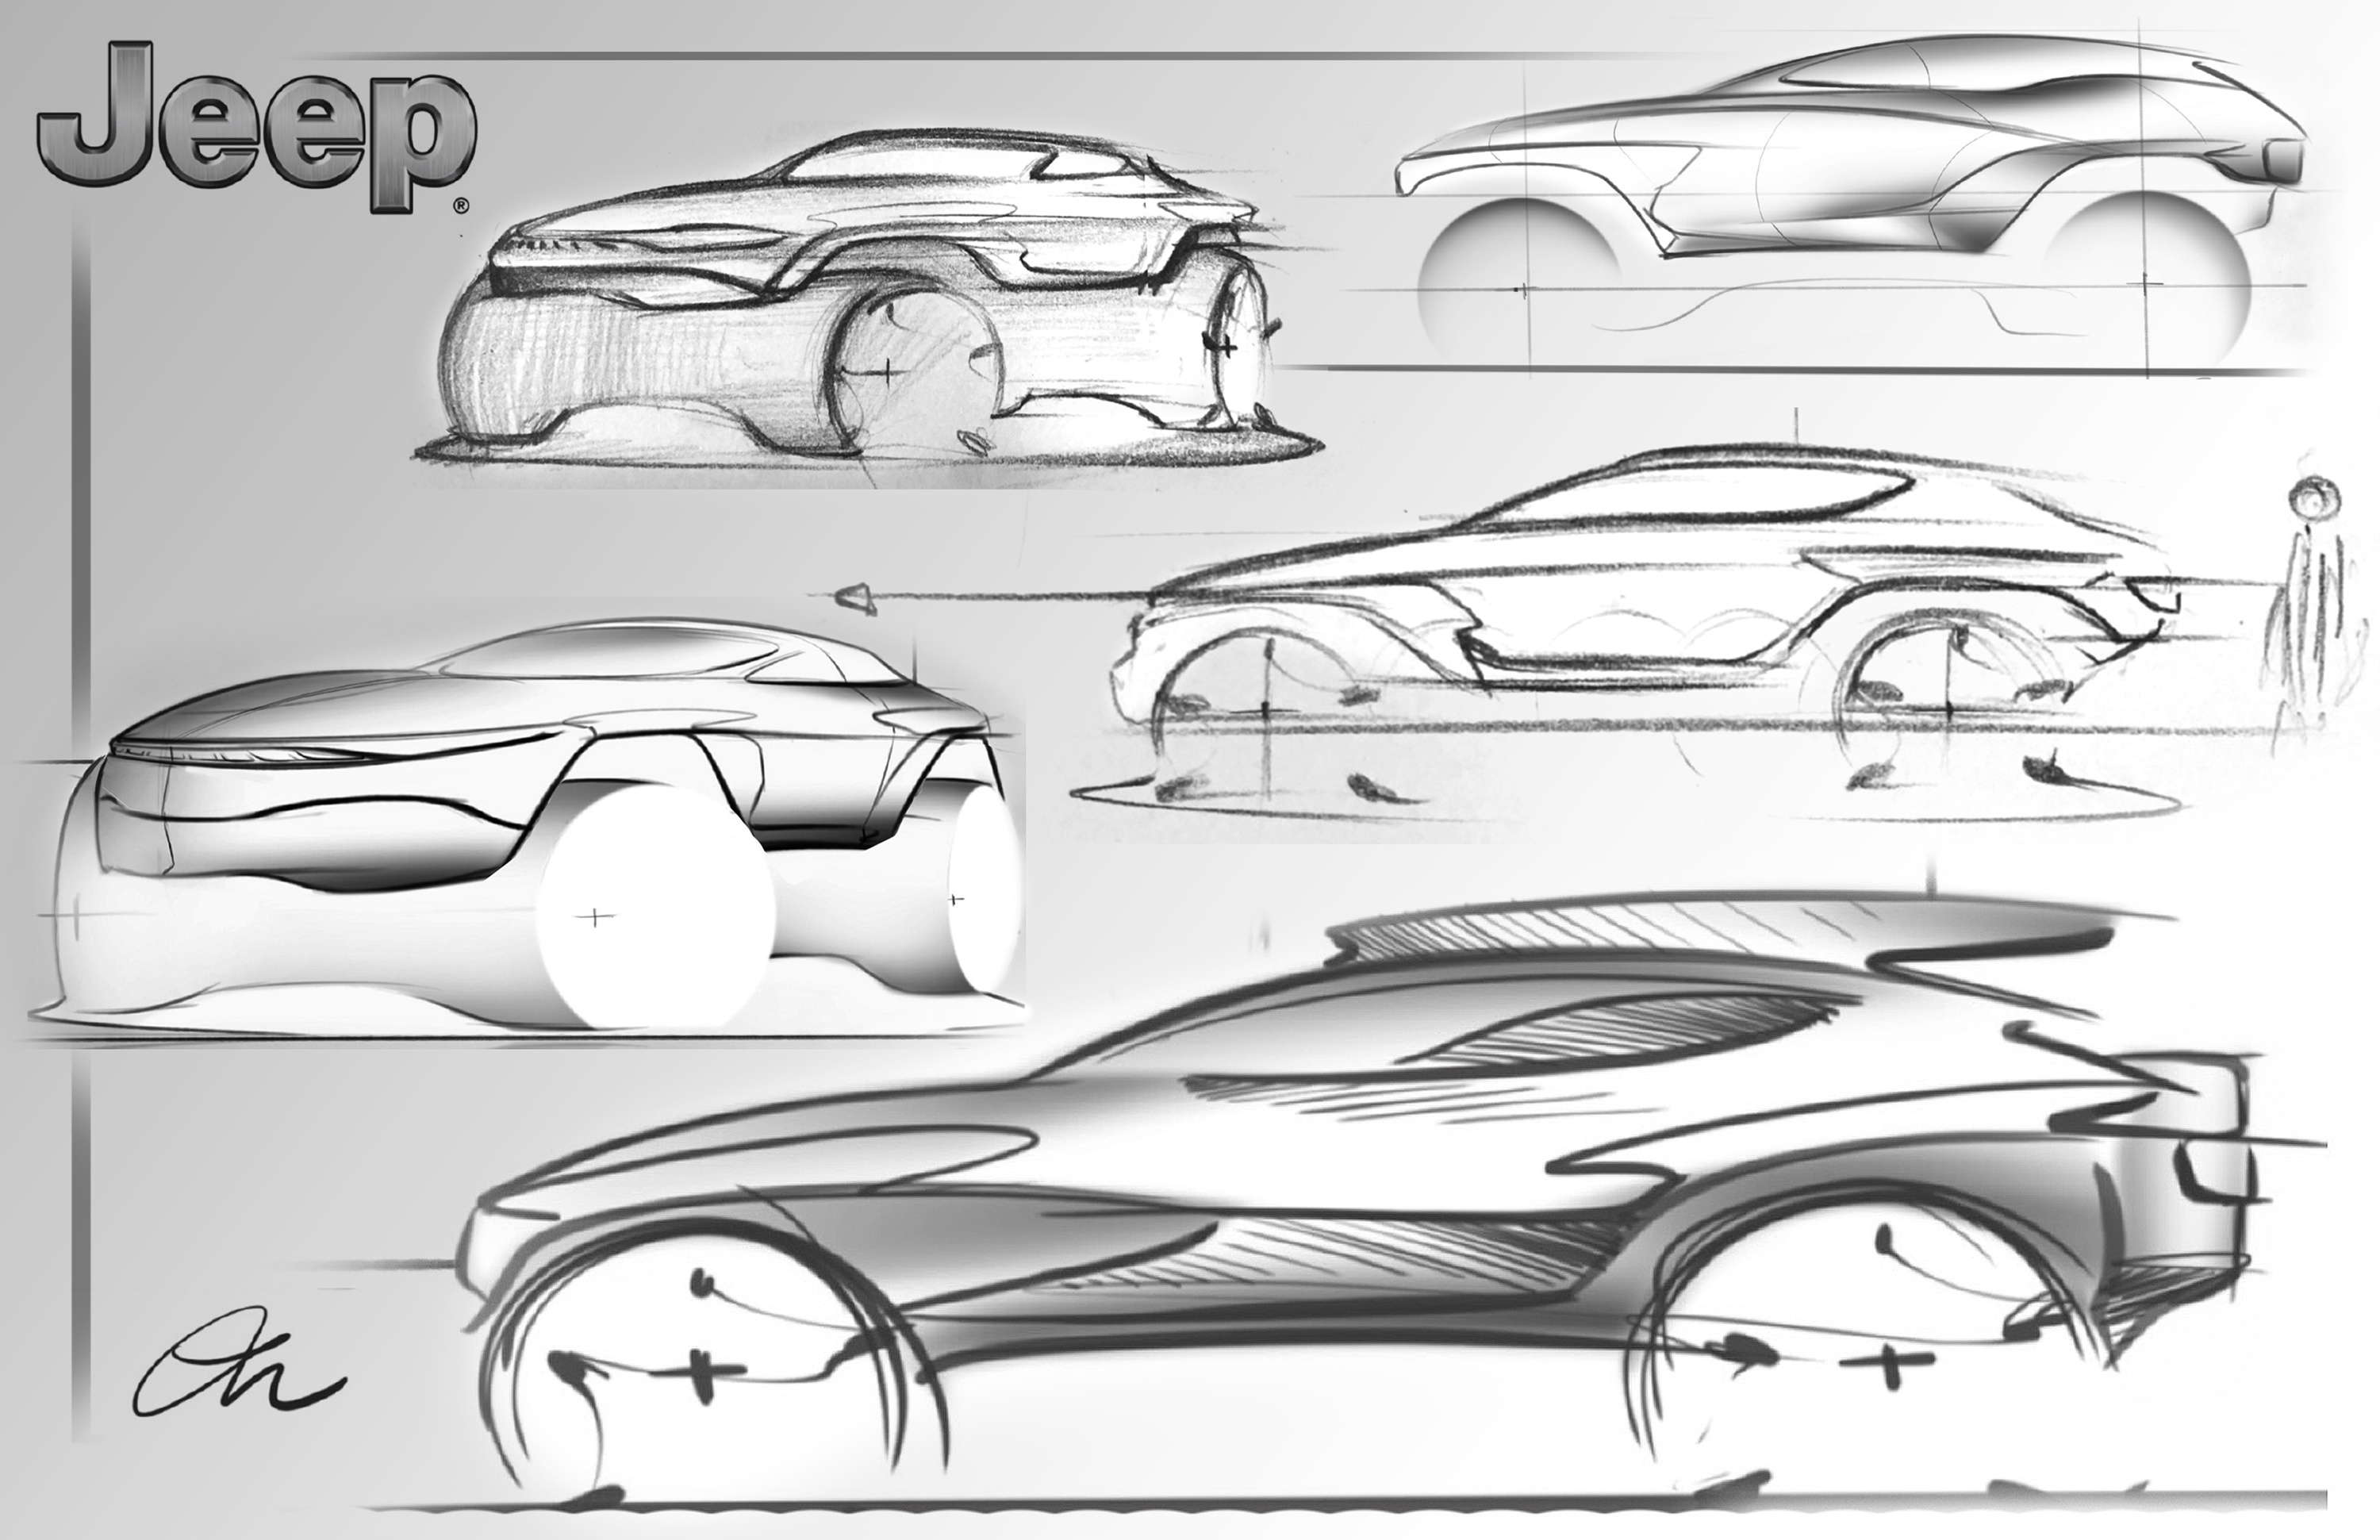 The three students are winners of the 2018 Drive For Design contest sponsored by FCA US Product Design Office and their prizes include an exclusive behind-the-scenes tour of the FCA USA design studios and the opportunity to work one-on-one with professional automotive designers in Fiat Chrysler Automobiles.